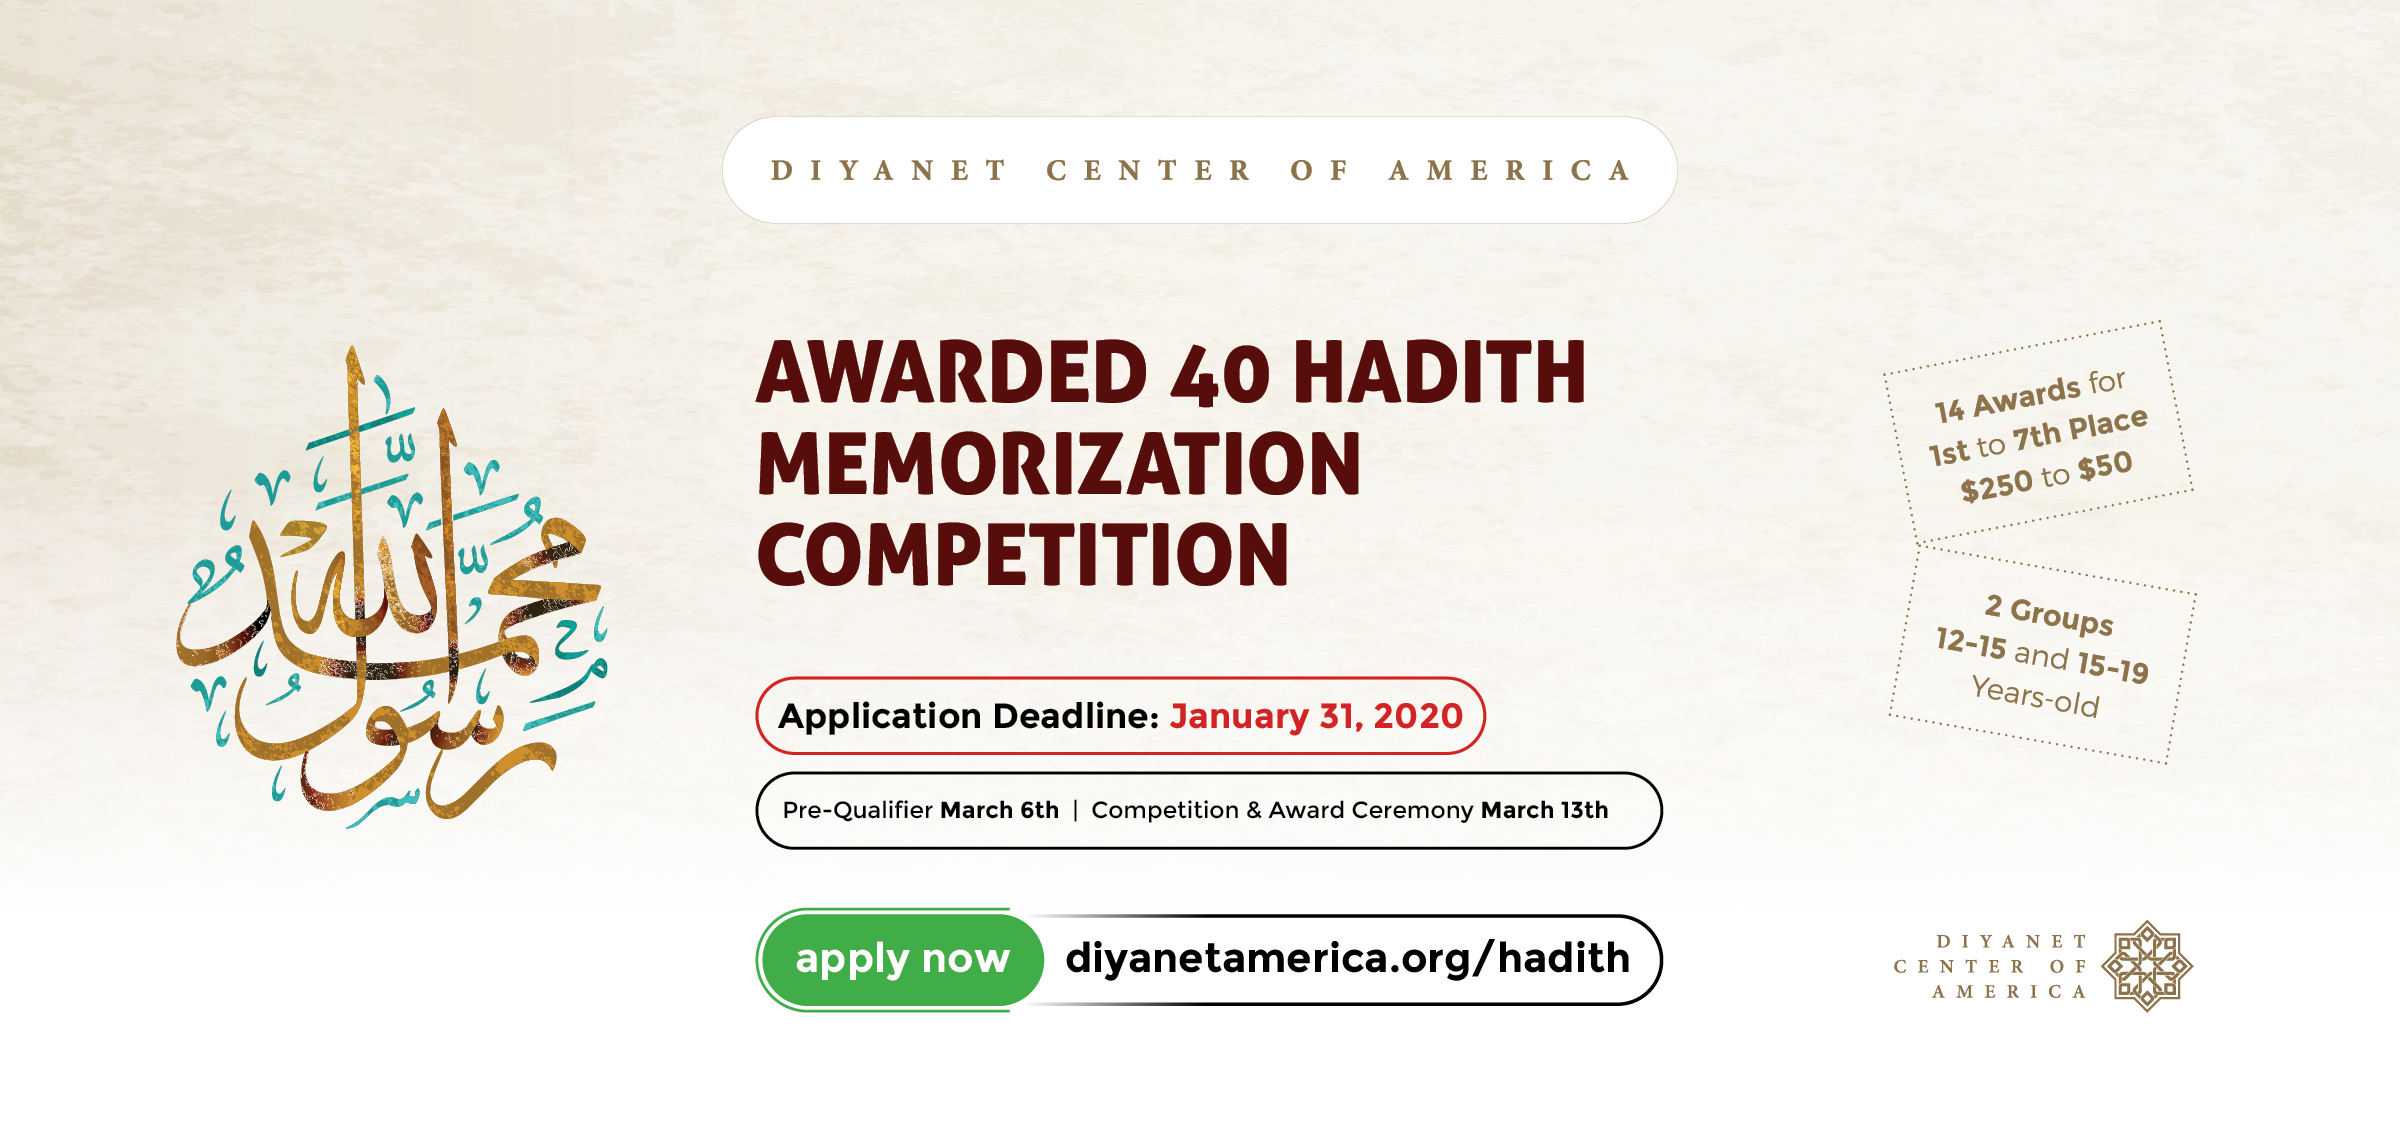 Awarded 40 Hadith Memorization Competition